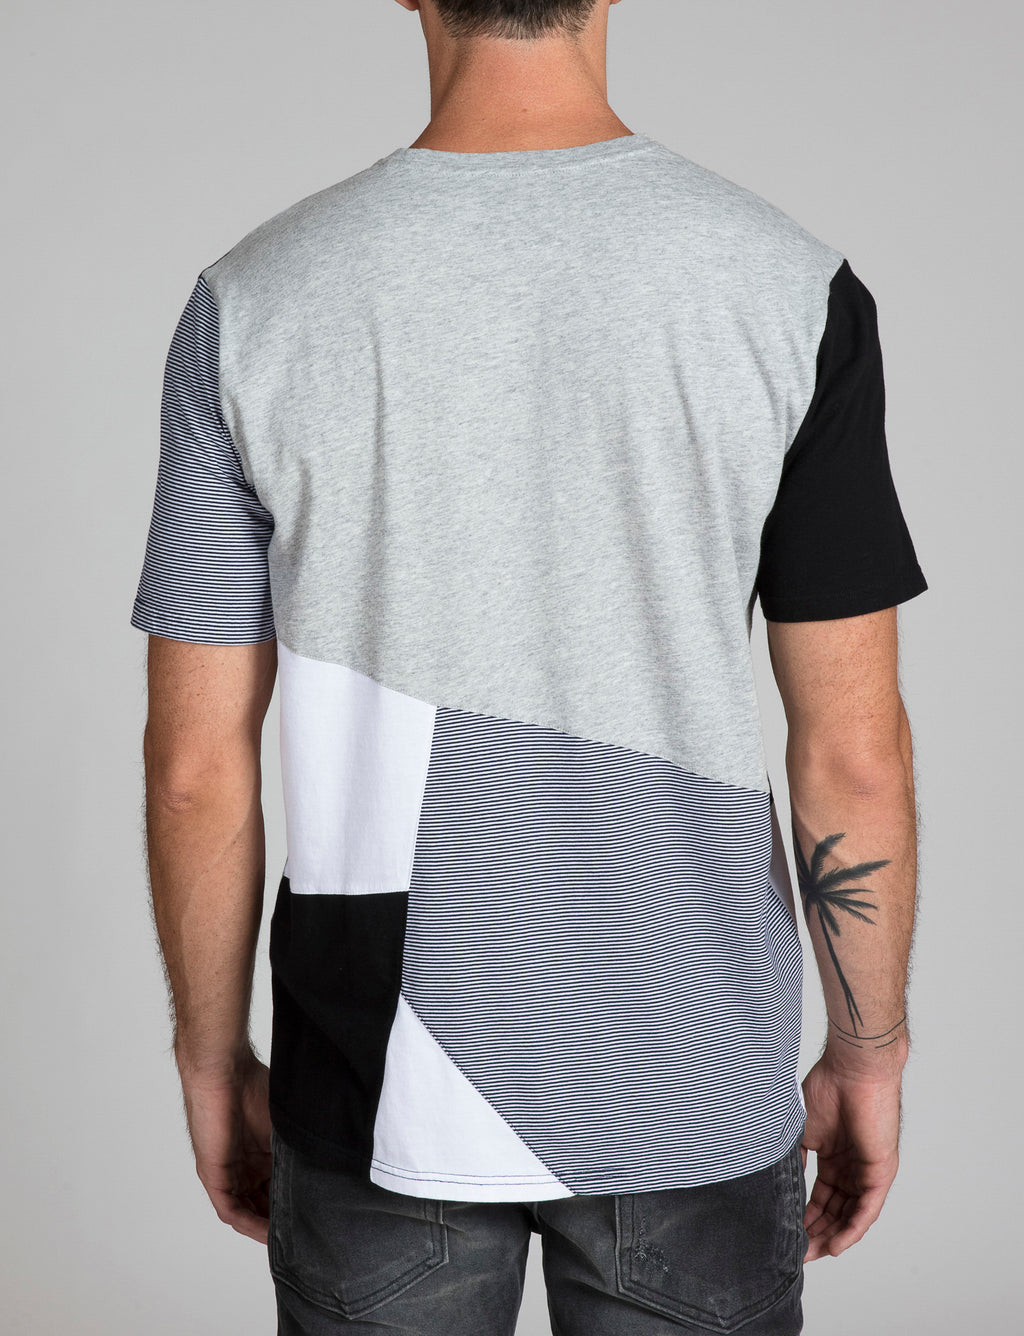 Mixed Media Seamed Tee